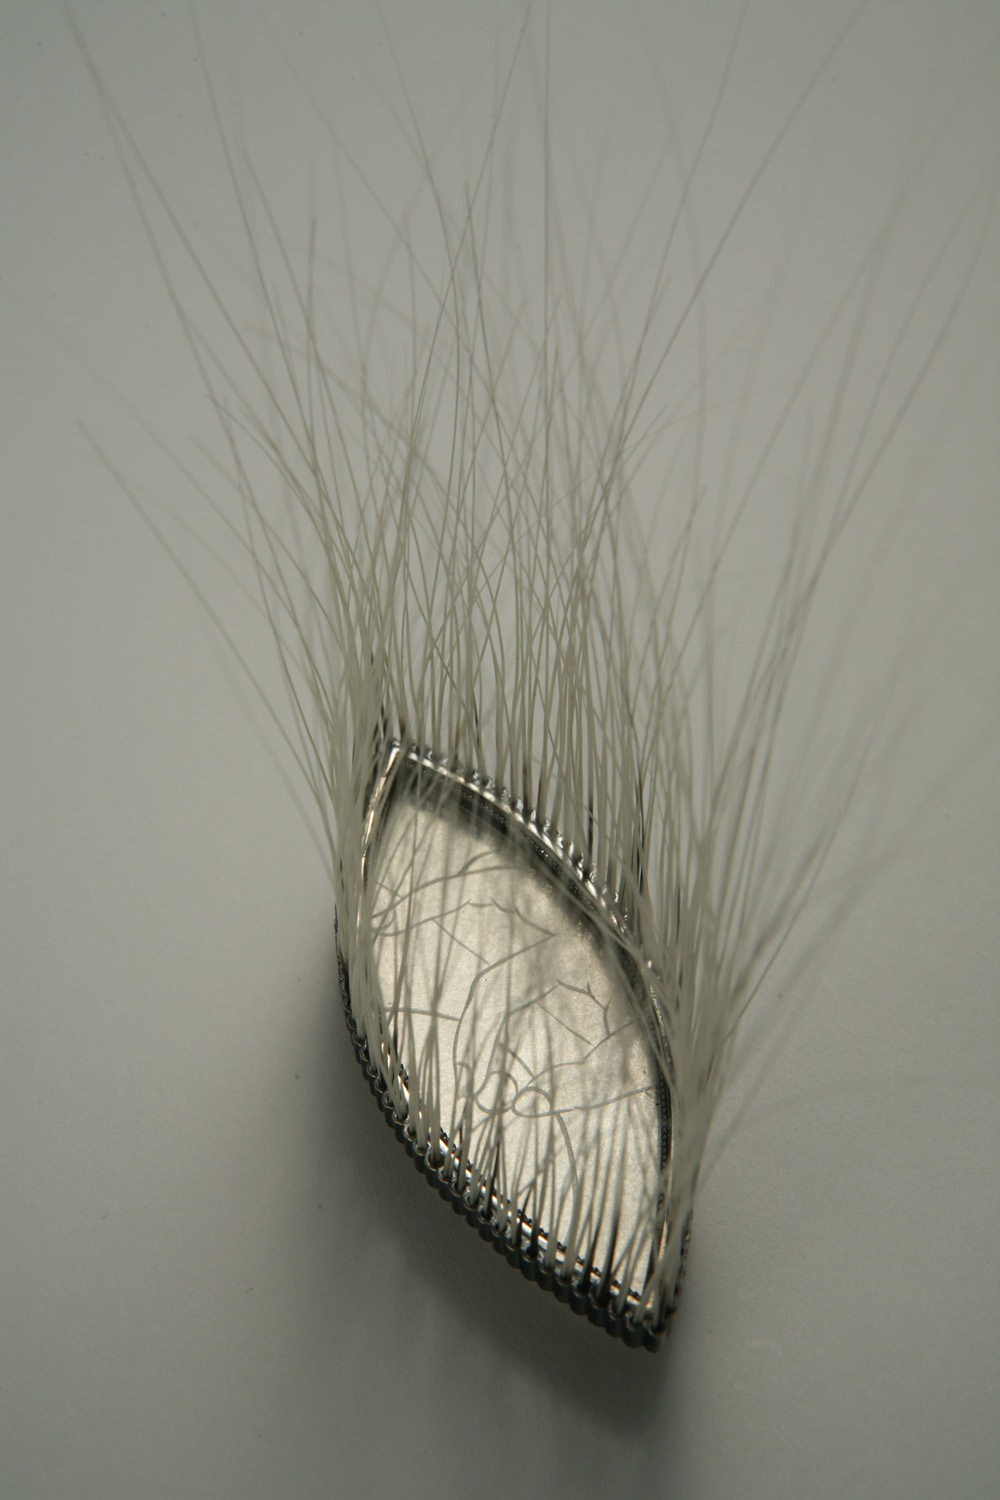 Lori Talcott   Gauging (Brooch) , 2009  Silver, plexiglass, cat whiskers